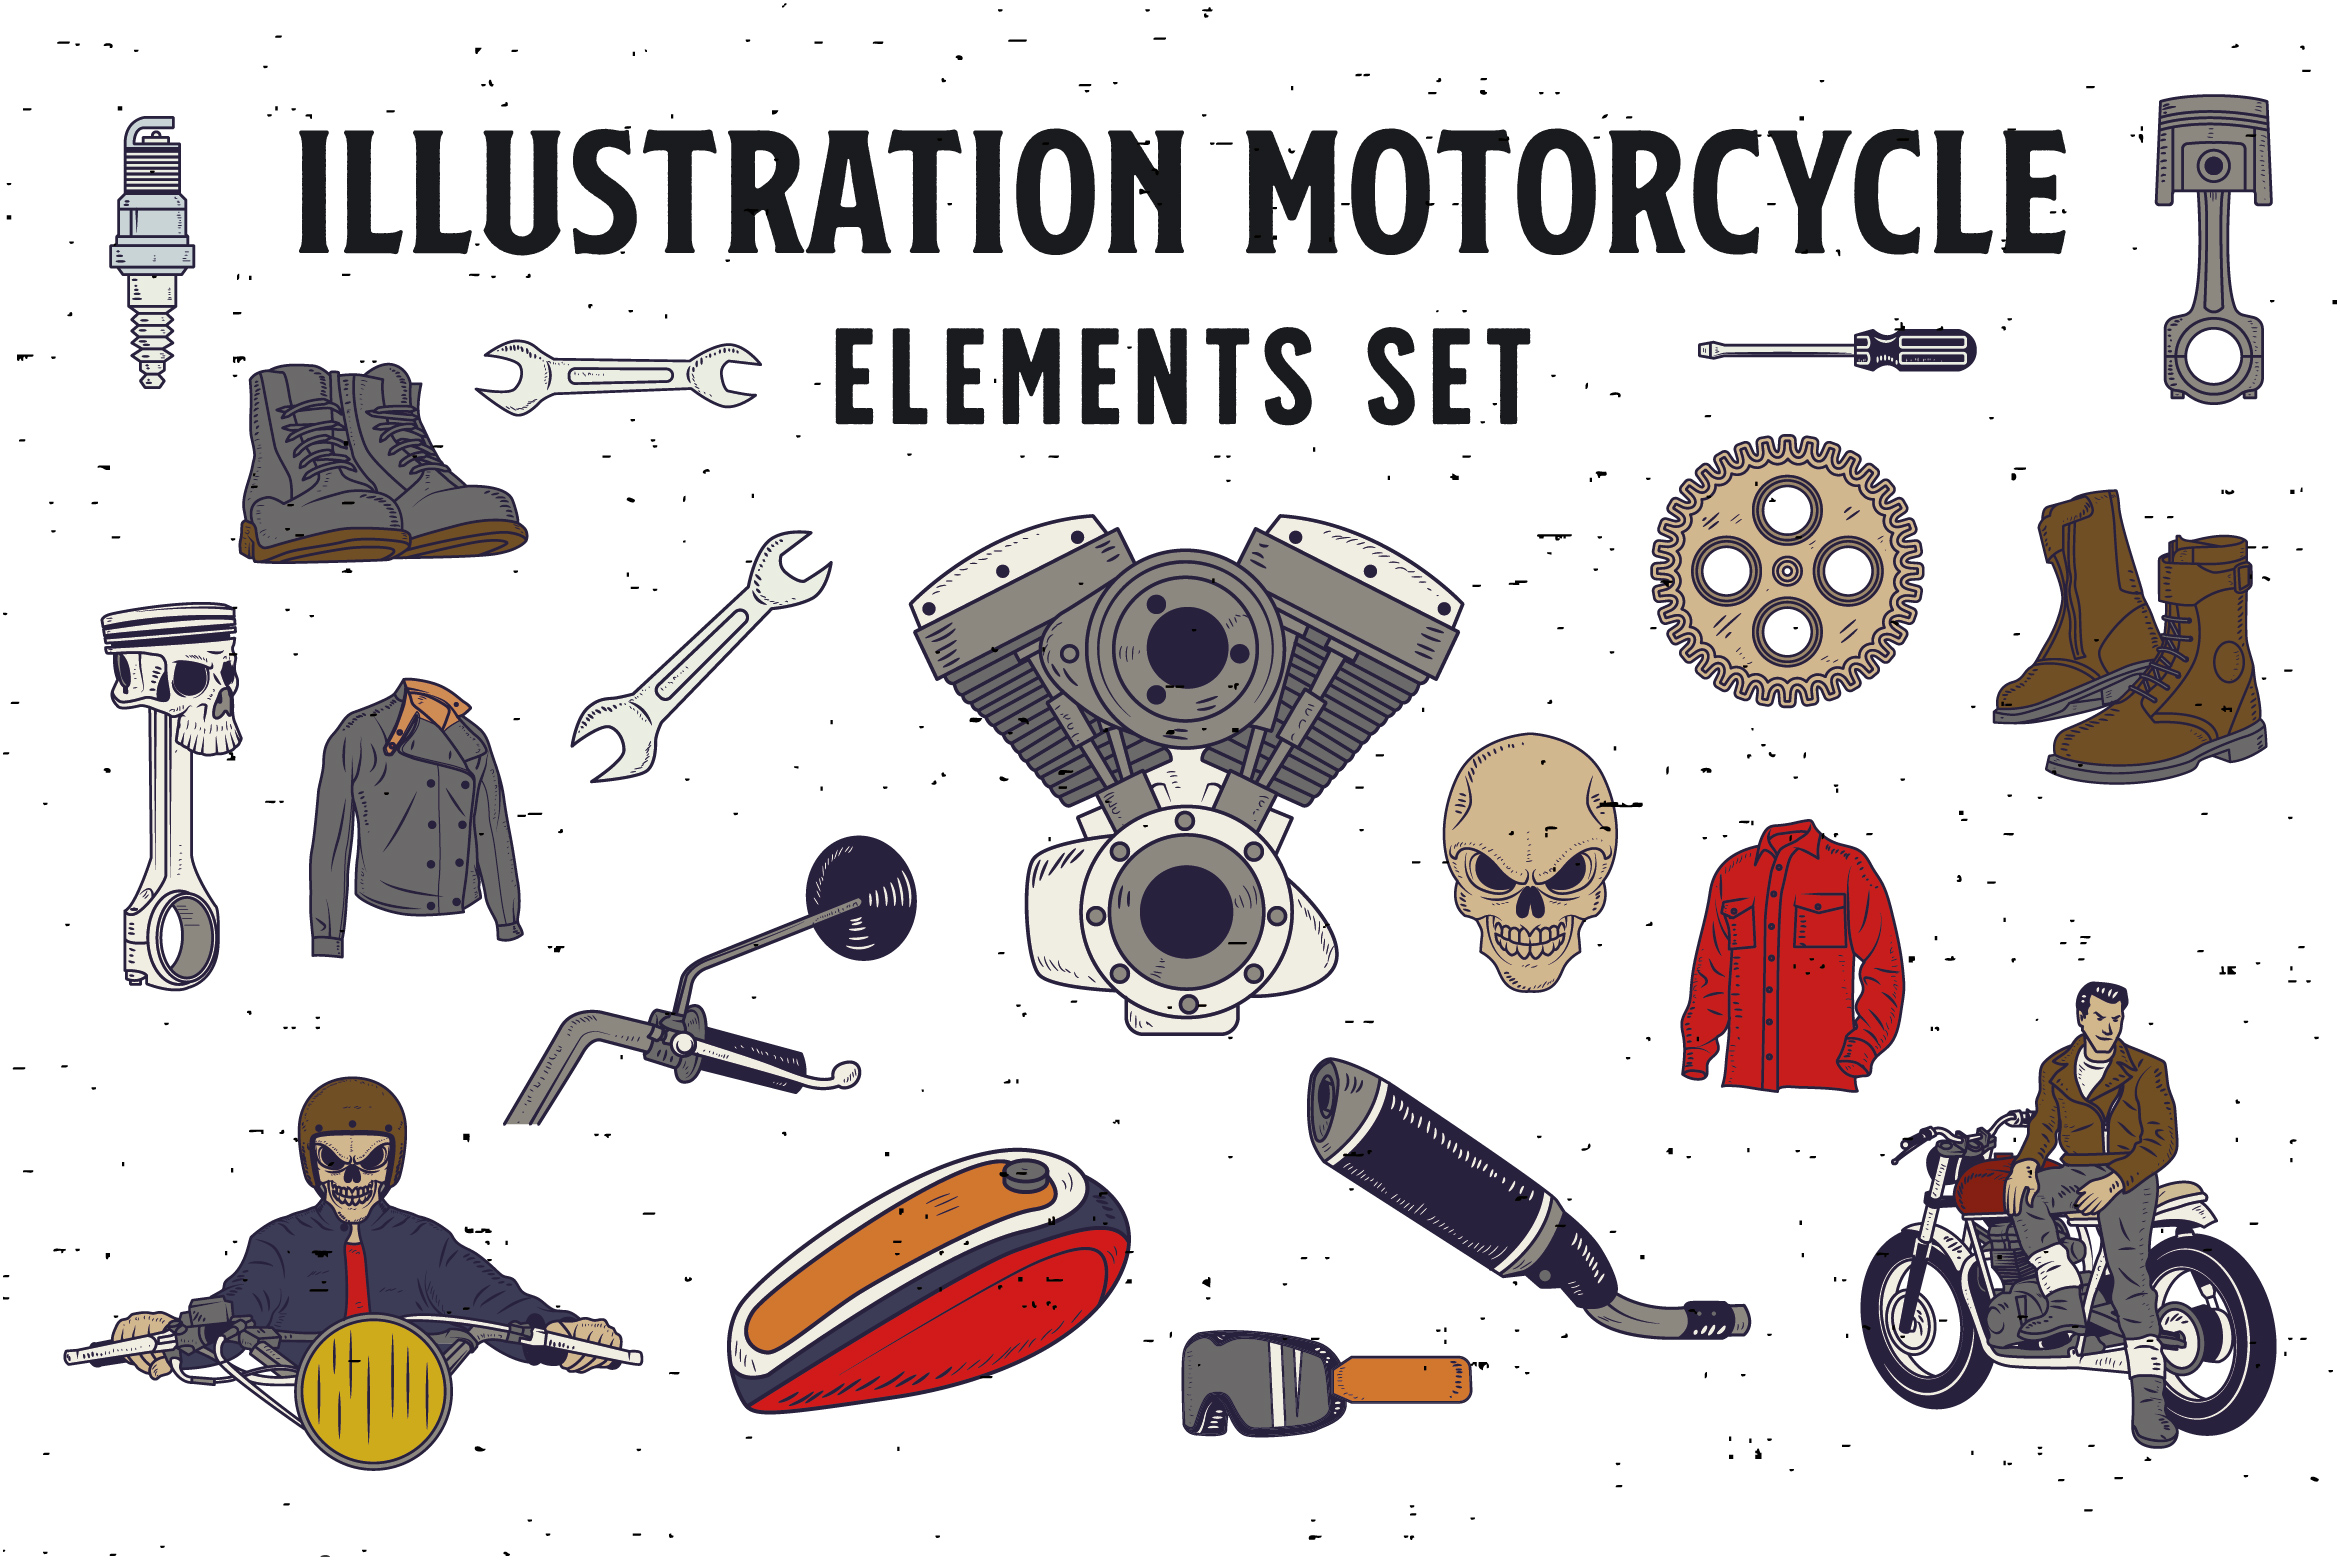 18 ILLUSTRATION MOTORCYCLE ELEMENTS Graphic By storictype Image 1